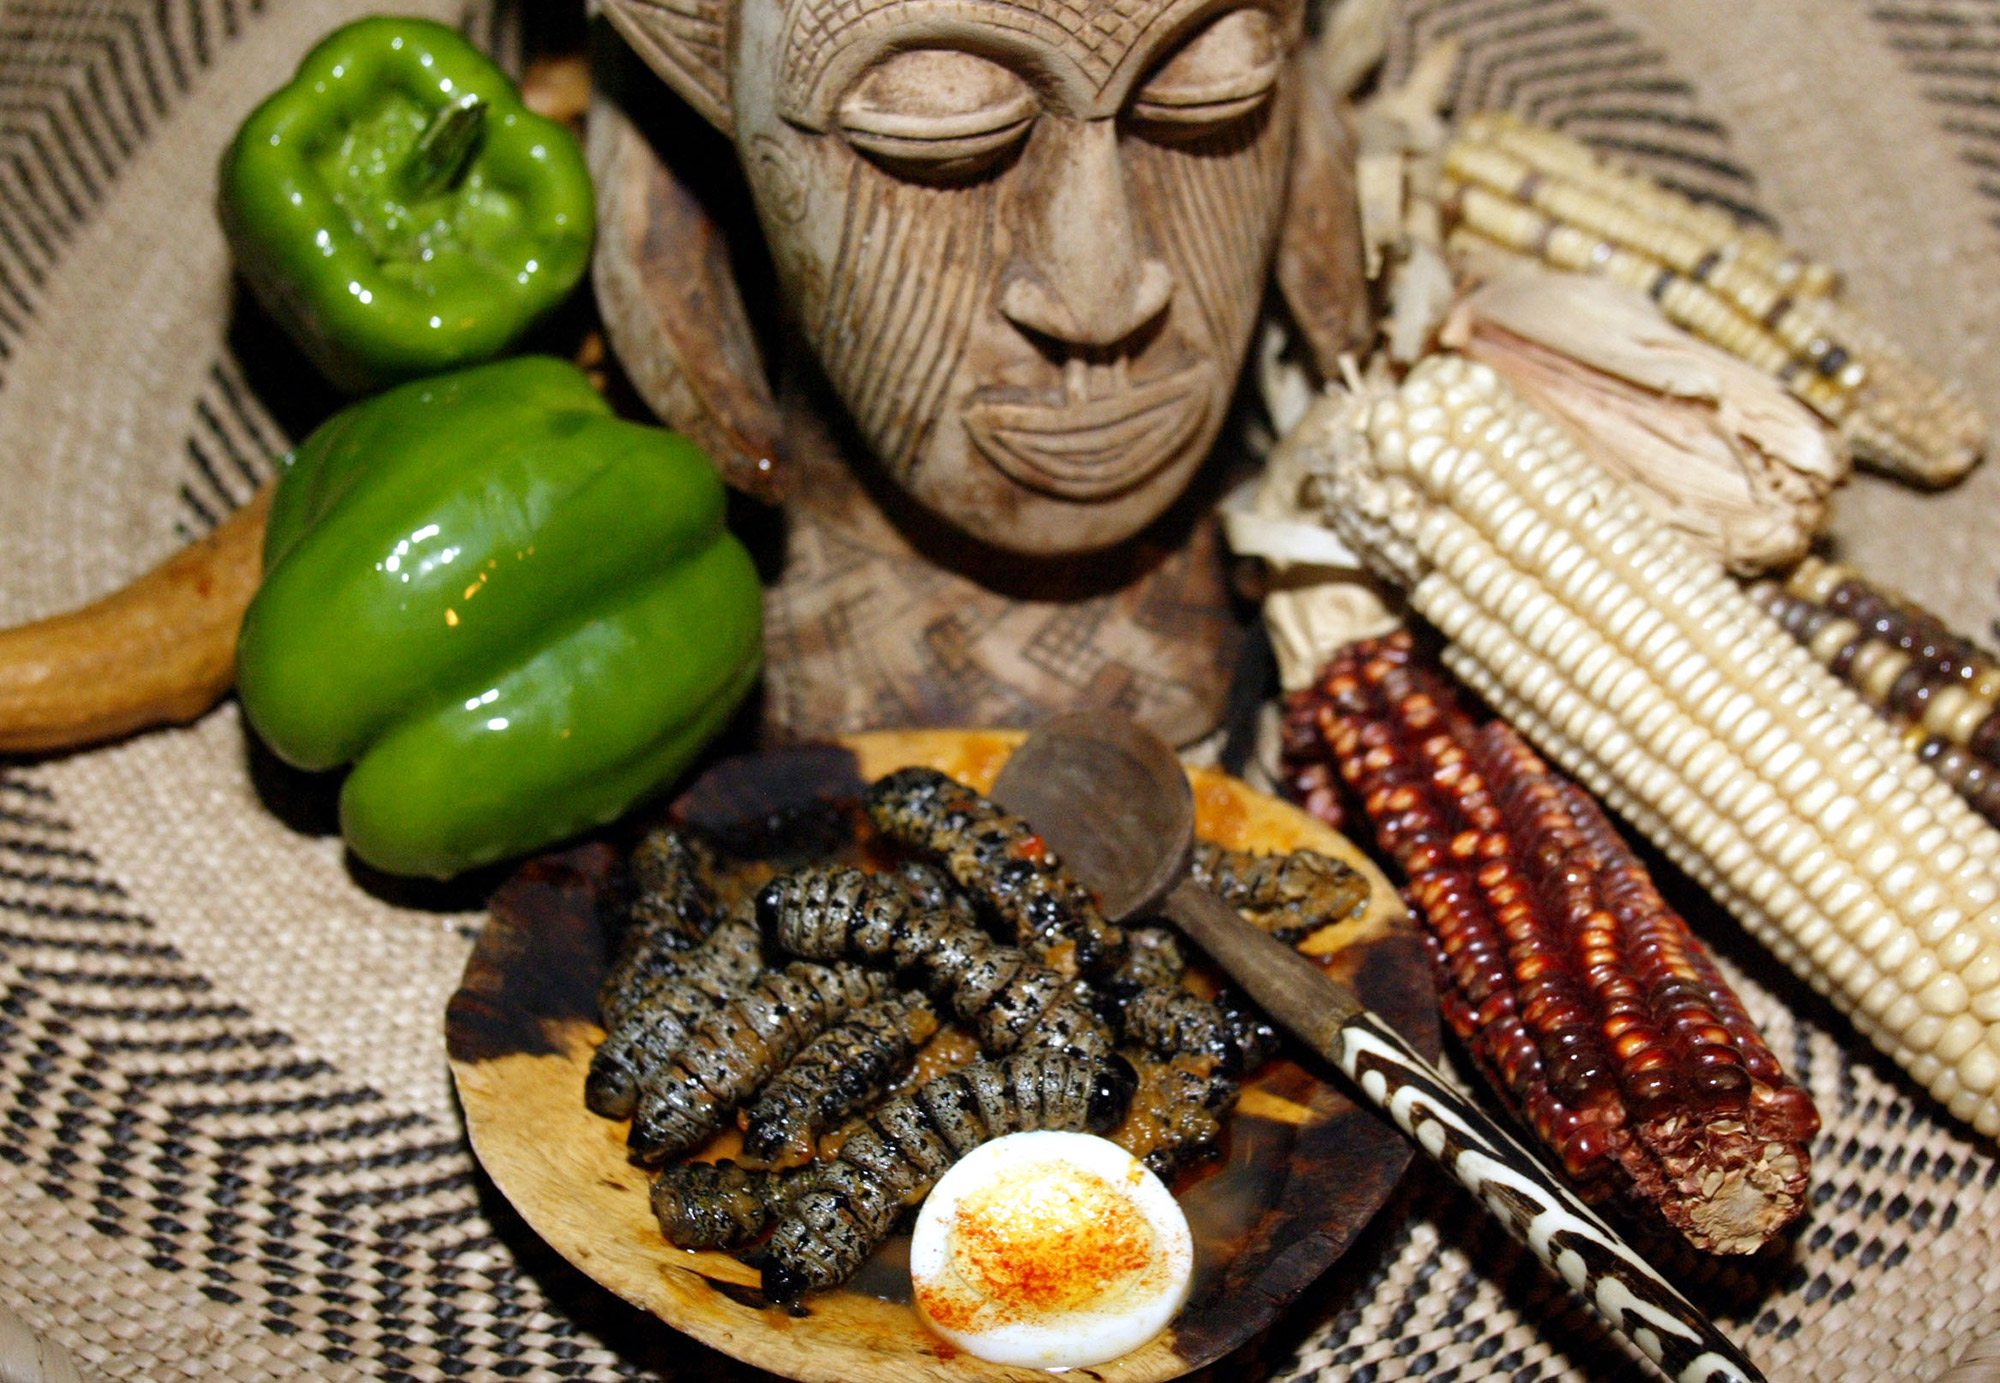 Mopani worms are displayed on a dish at a restaurant in Johannesburg September 14, 2006. Worms, an easily obtainable source of free food and most often served in a sauce, are a delicacy to most people living in Southern Africa. Photograph by Siphiwe Sibeko/Reuters.